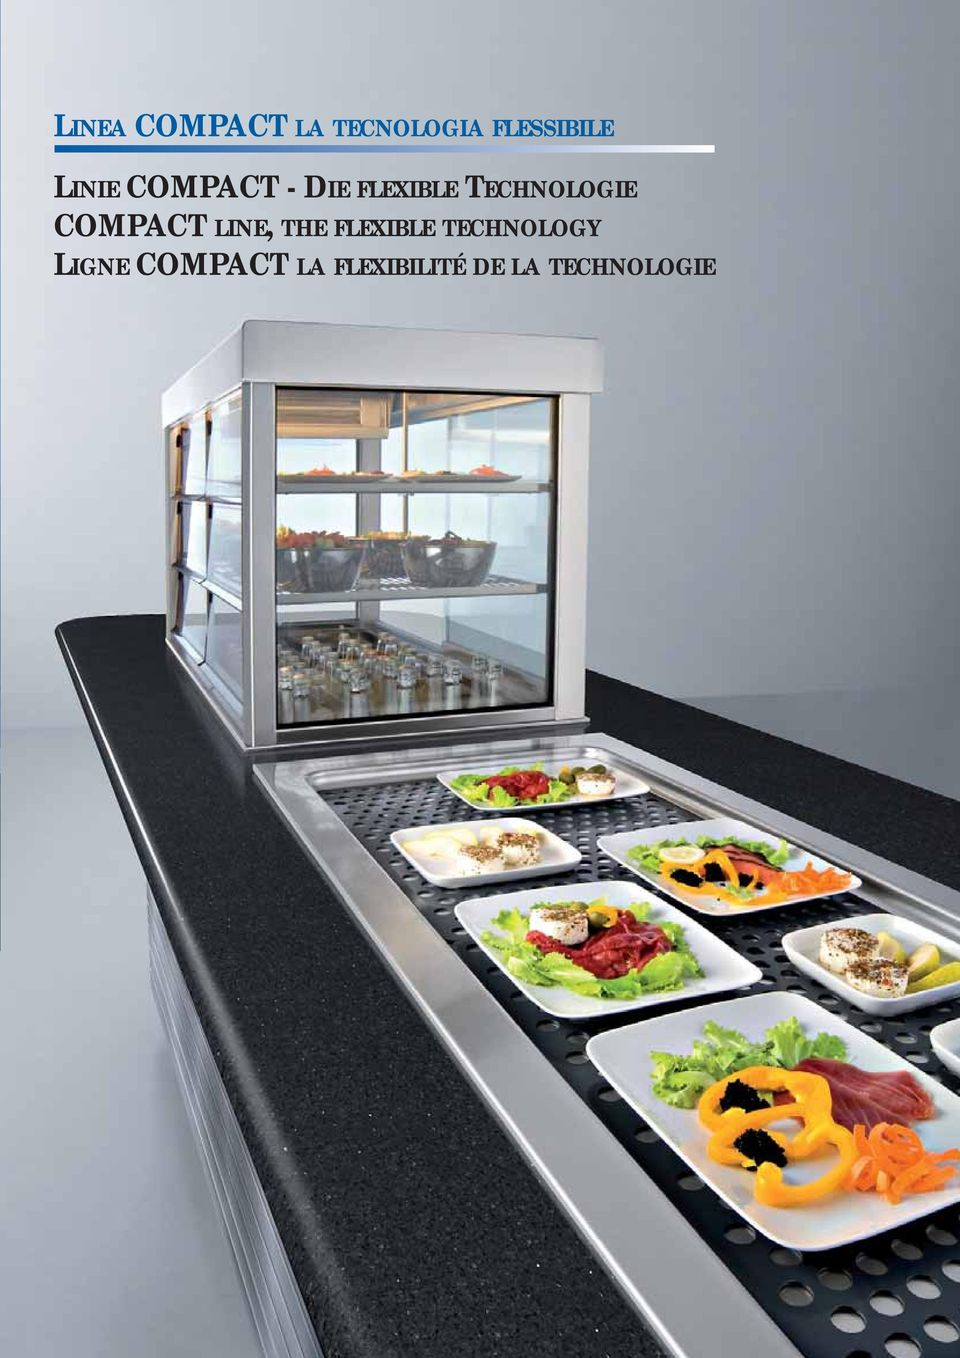 COMPACT LINE, THE FLEXIBLE TECHNOLOGY